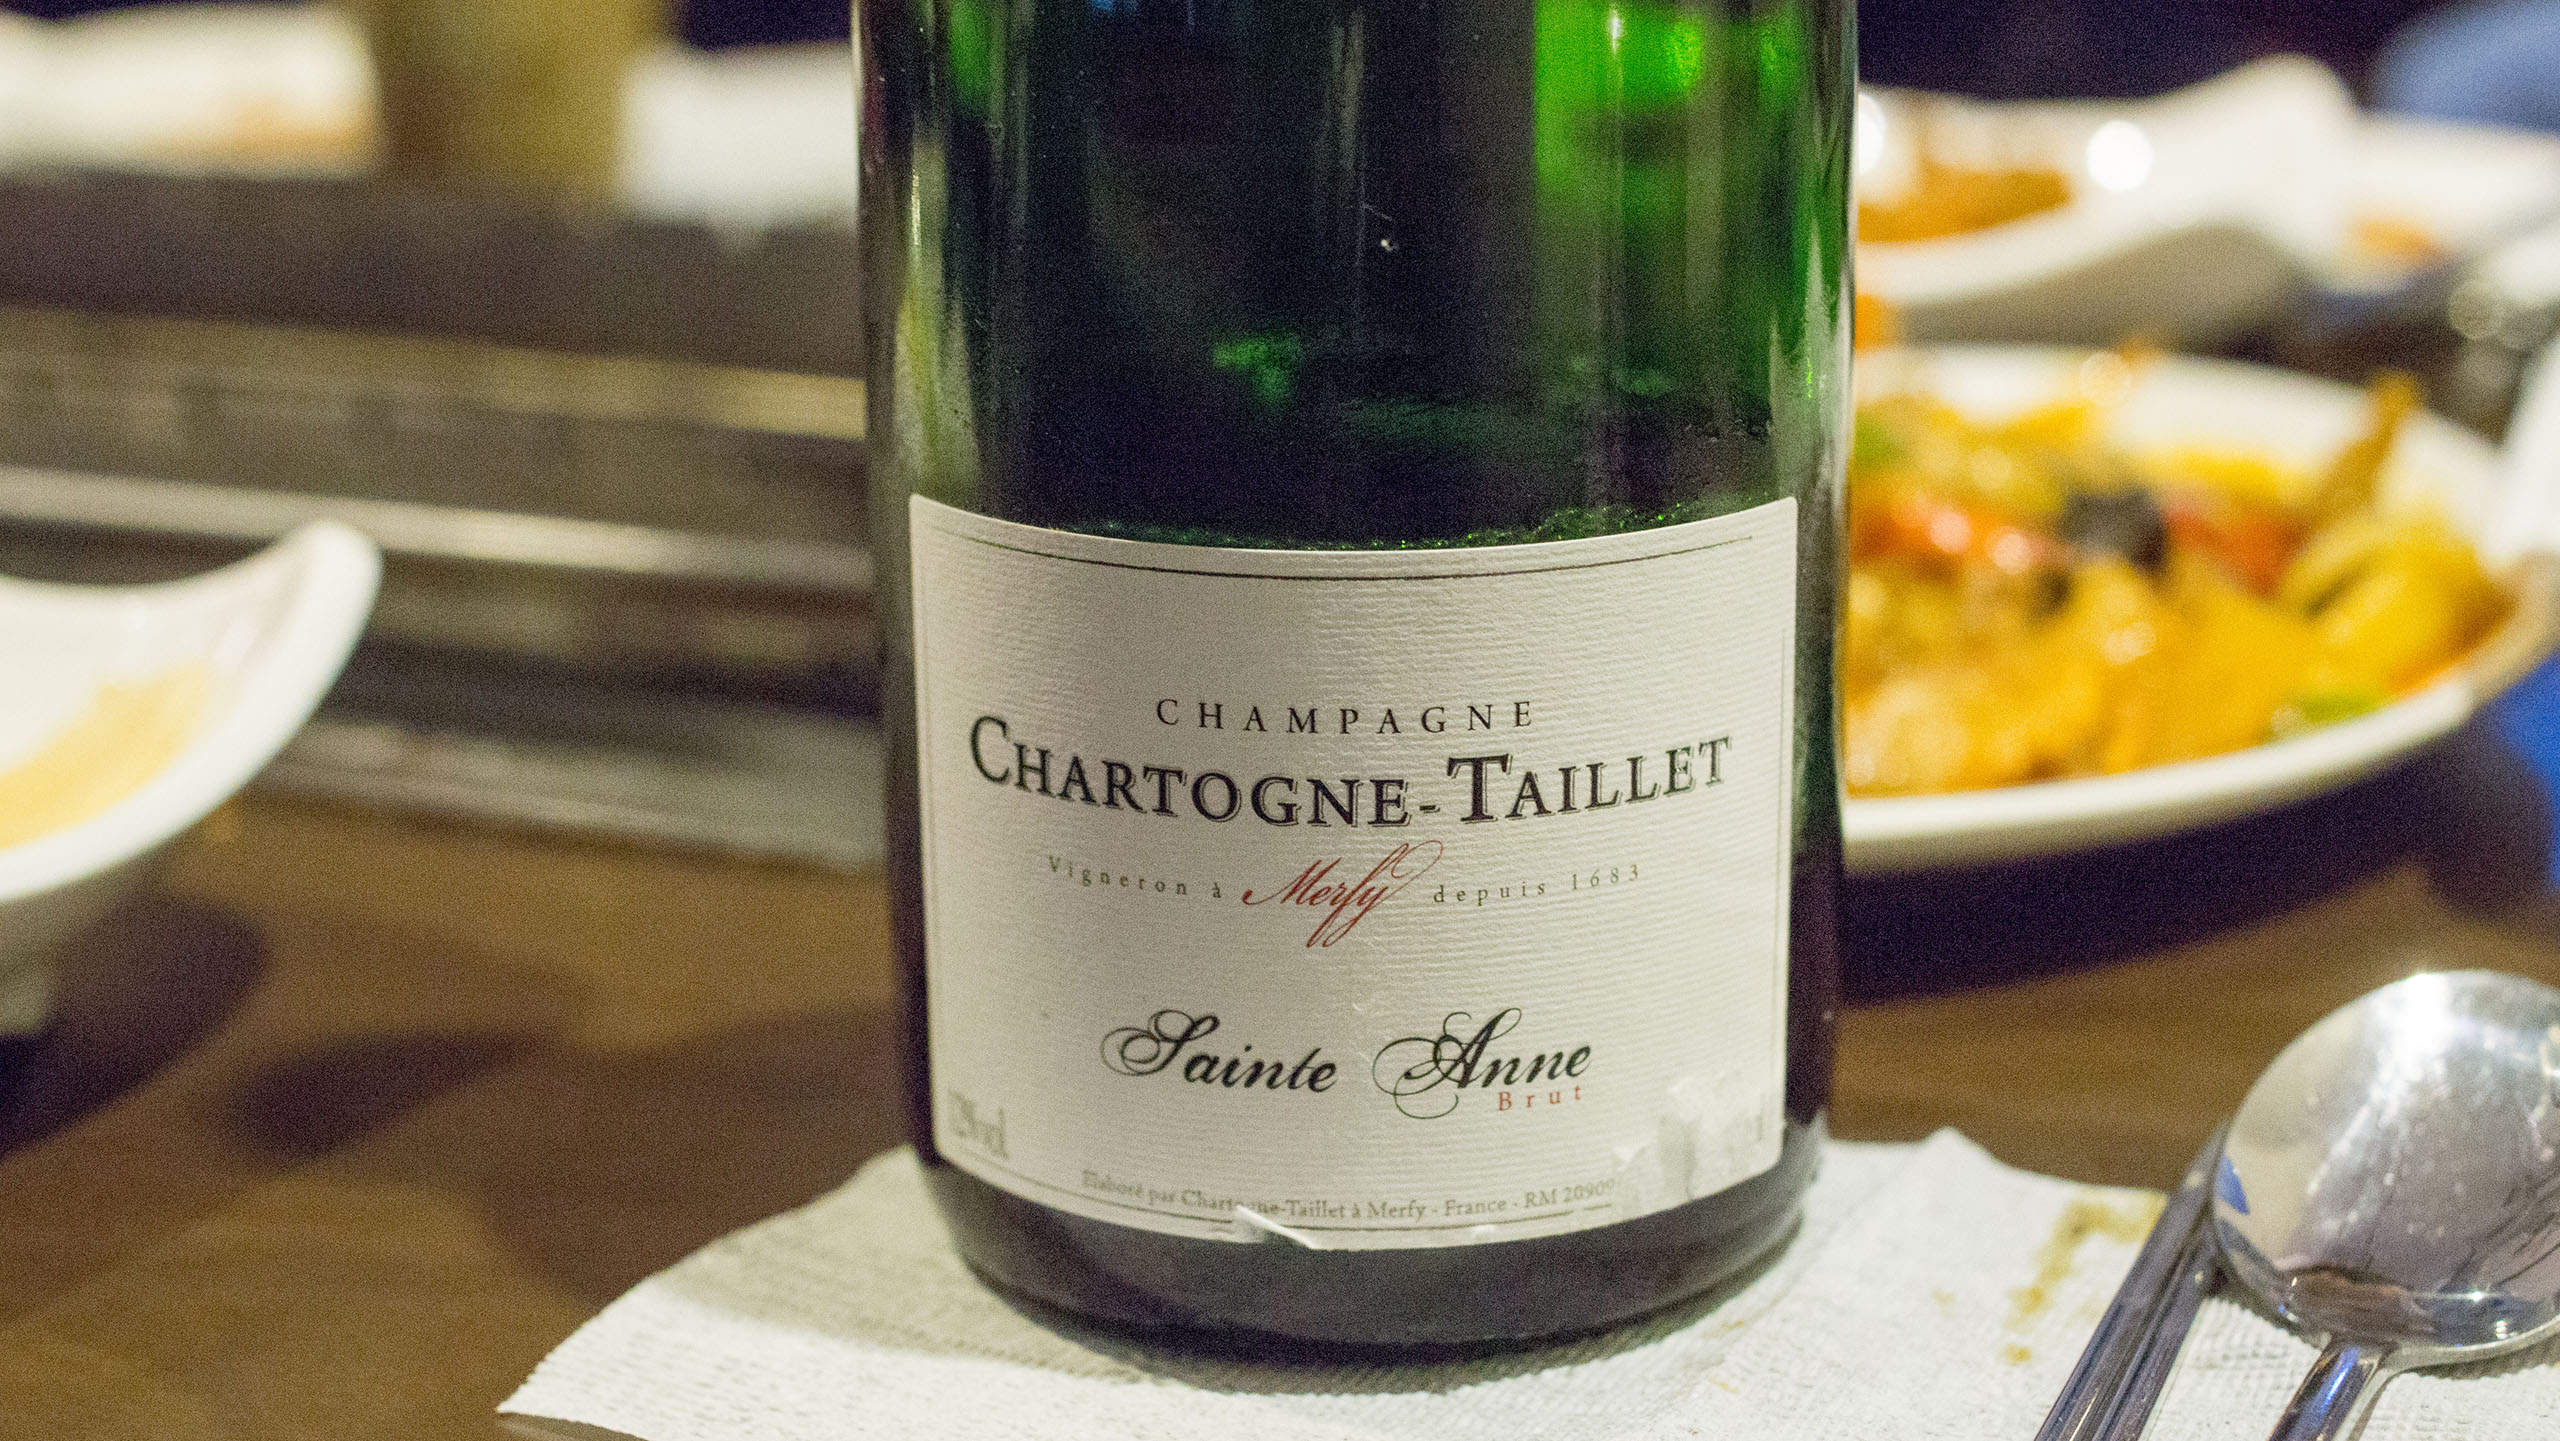 Champagne Chartogne Taillet St. Anne